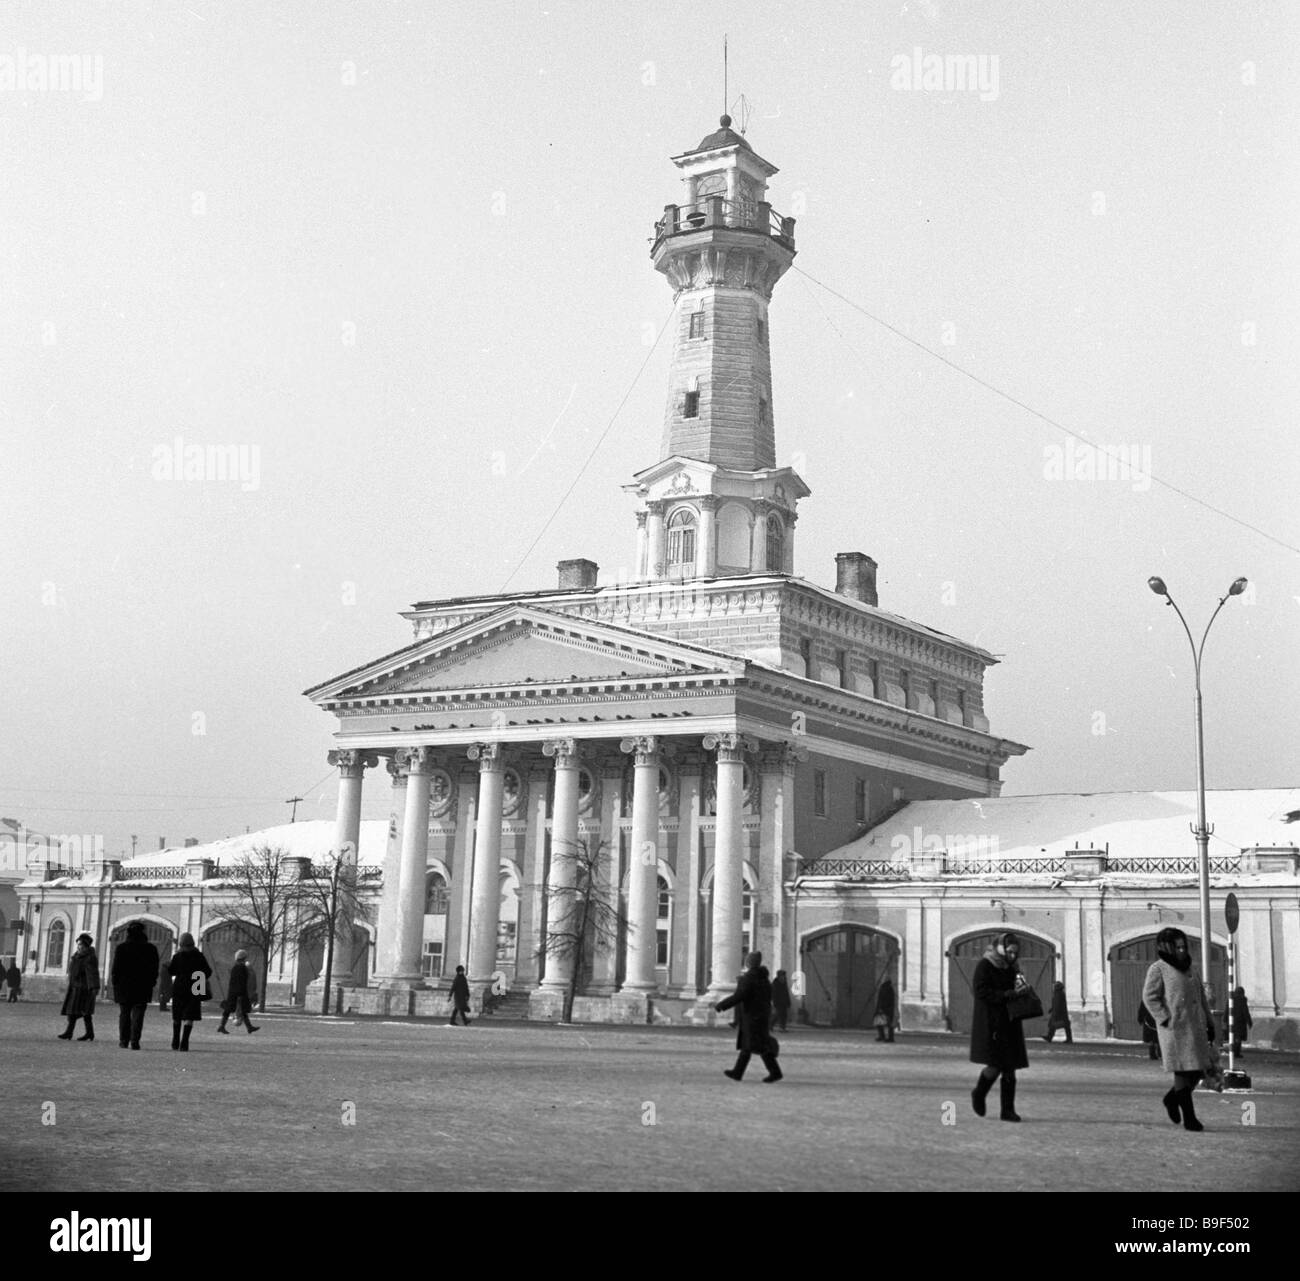 Fire tower (Kostroma): the ancient symbol of the modern city 41